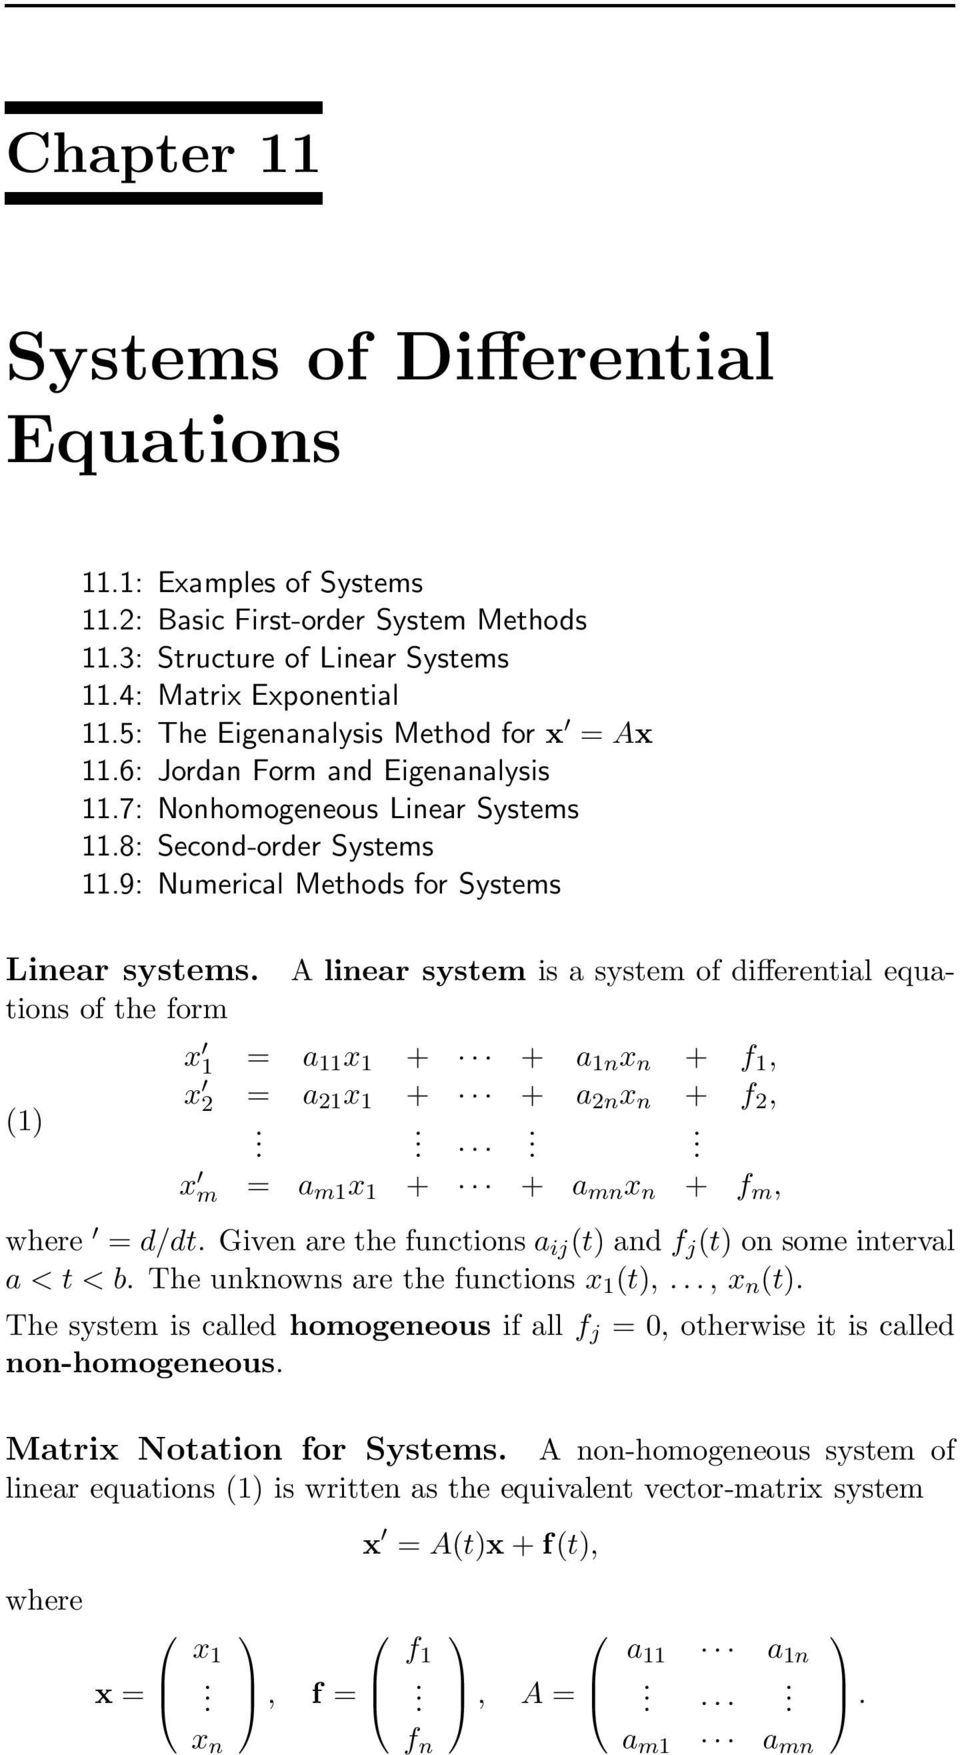 Systems of Differential Equations - PDF